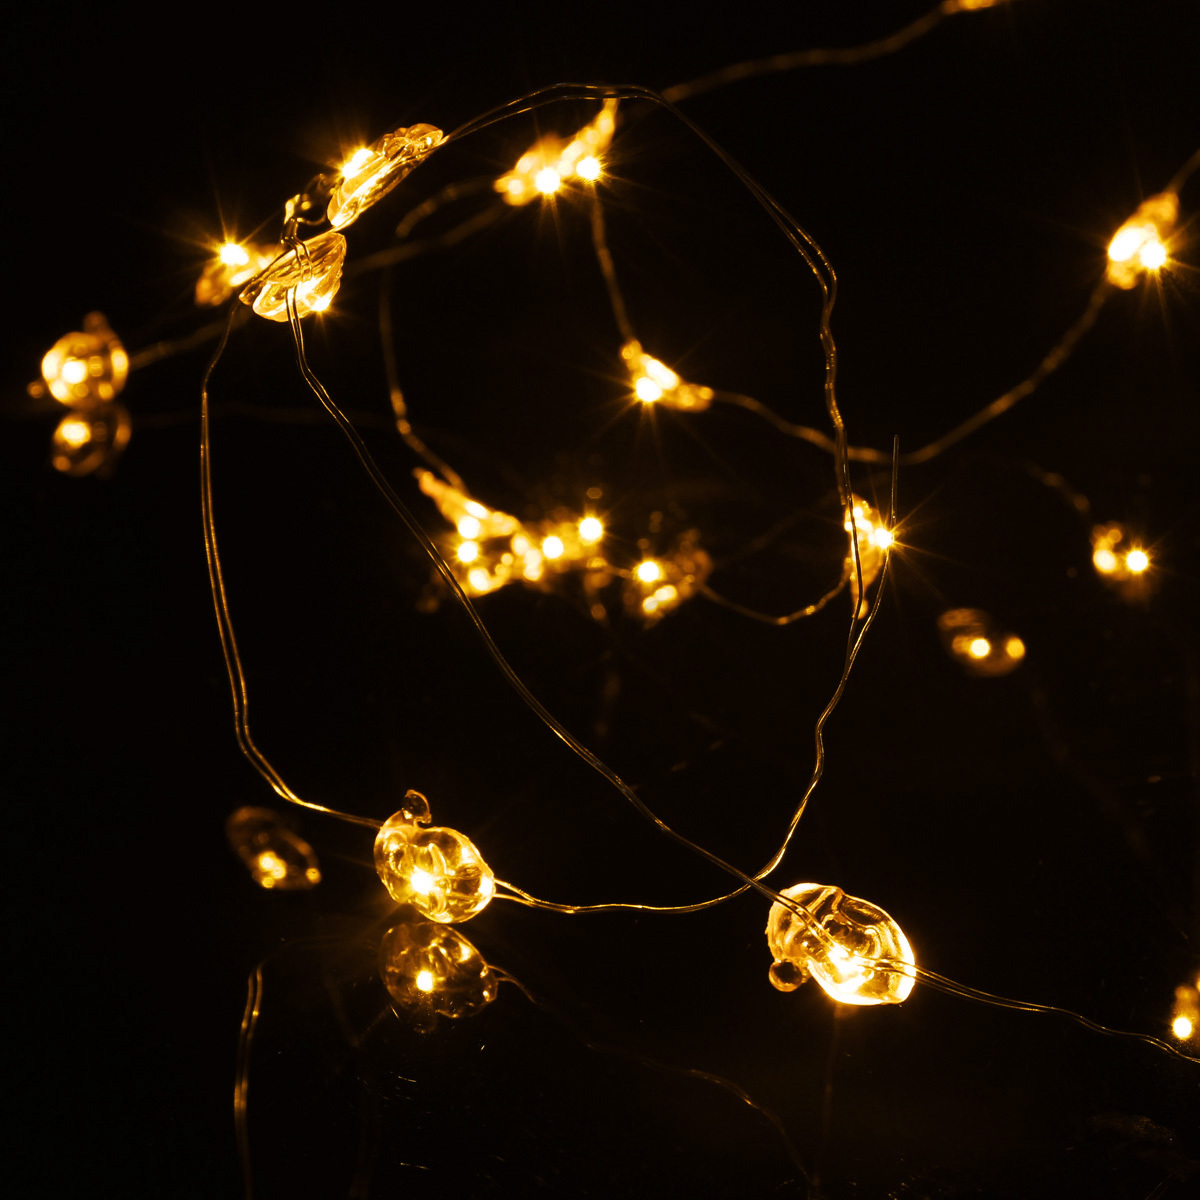 Led String Lights Warm White Outdoor : Warm White Christmas Wedding Xmas Party Outdoor LED Fairy String Lights Lamp eBay